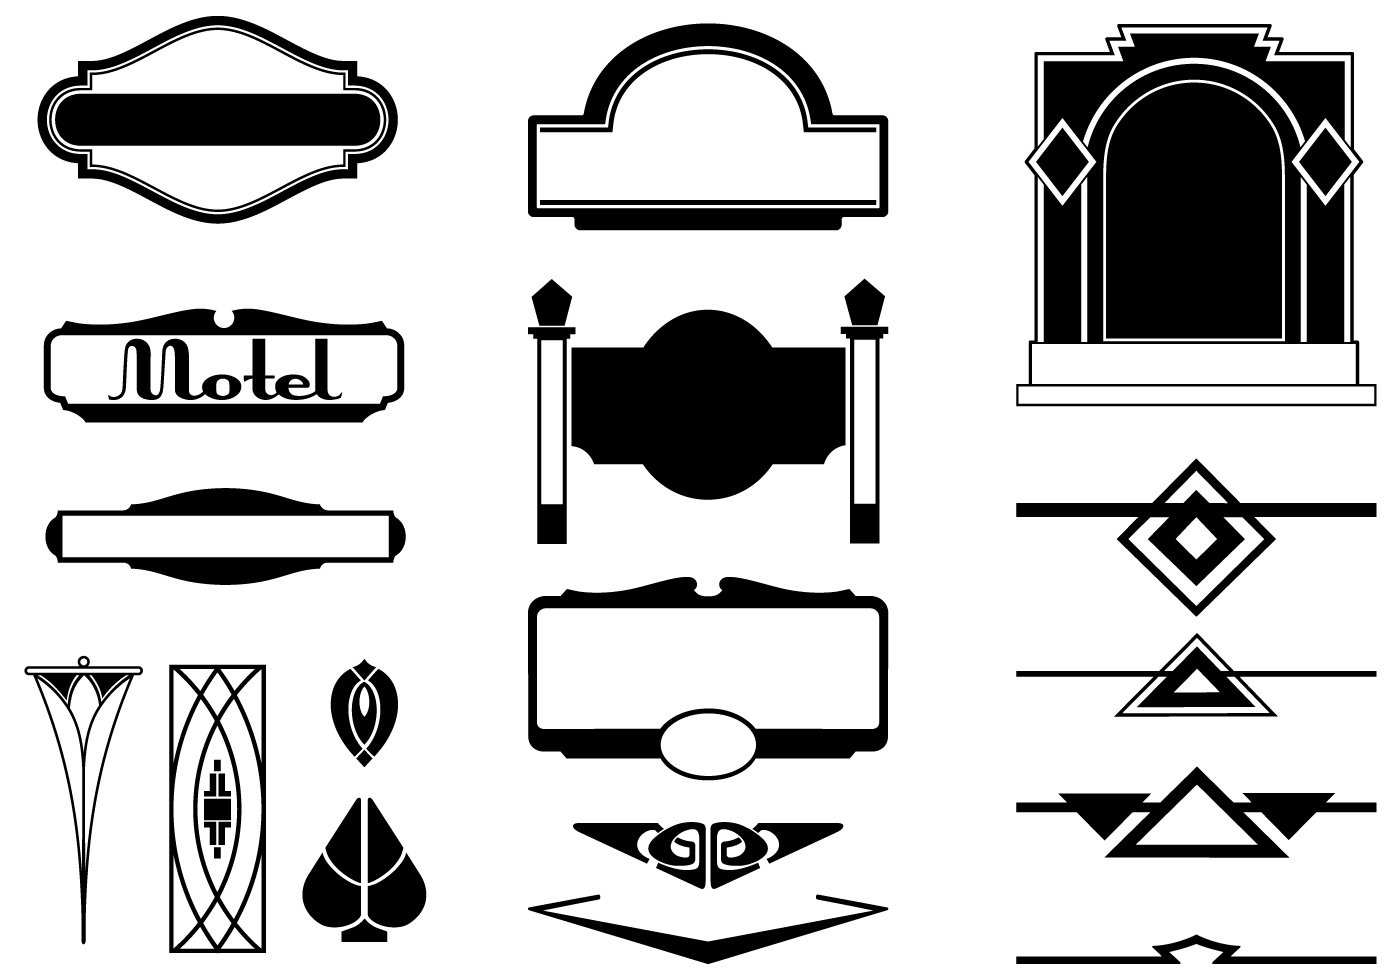 Art Deco Sign Brushes and Ornament Brush Pack - Free ...